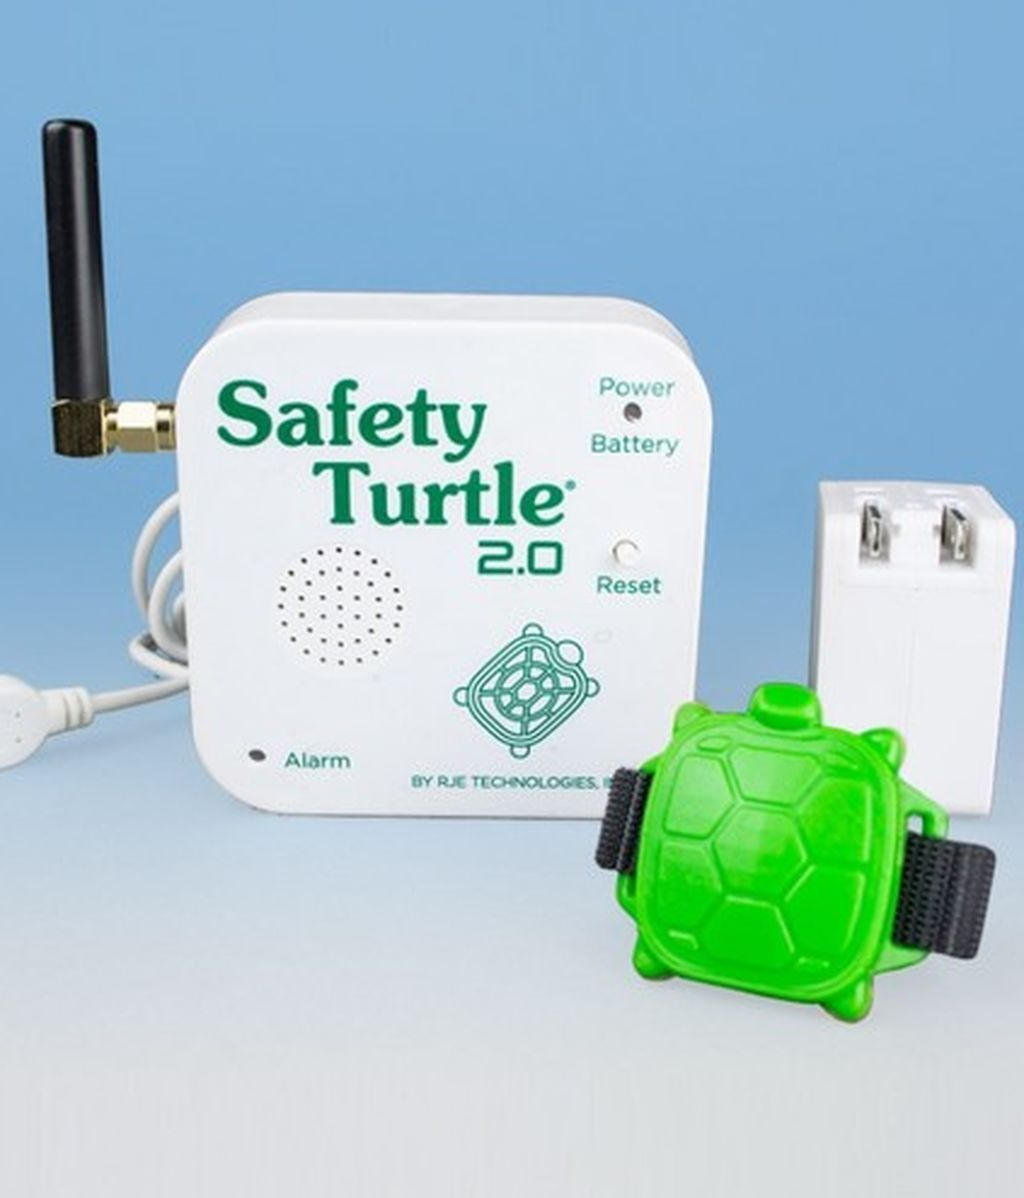 Safety Turtle 2.0